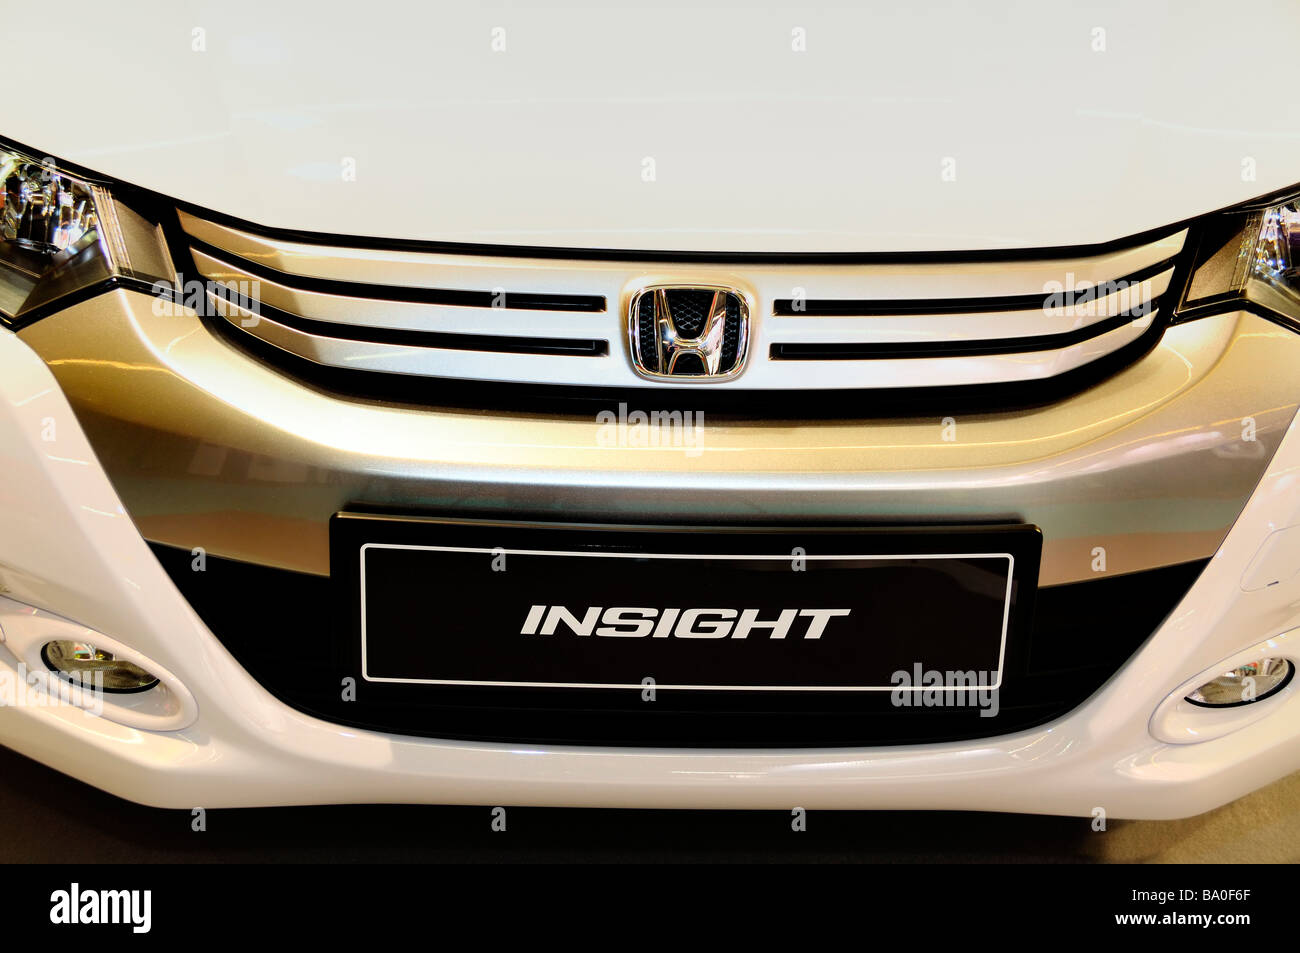 Shopping Honda Car Company Trade Show Insight Hybrid Detail Close Up Logo